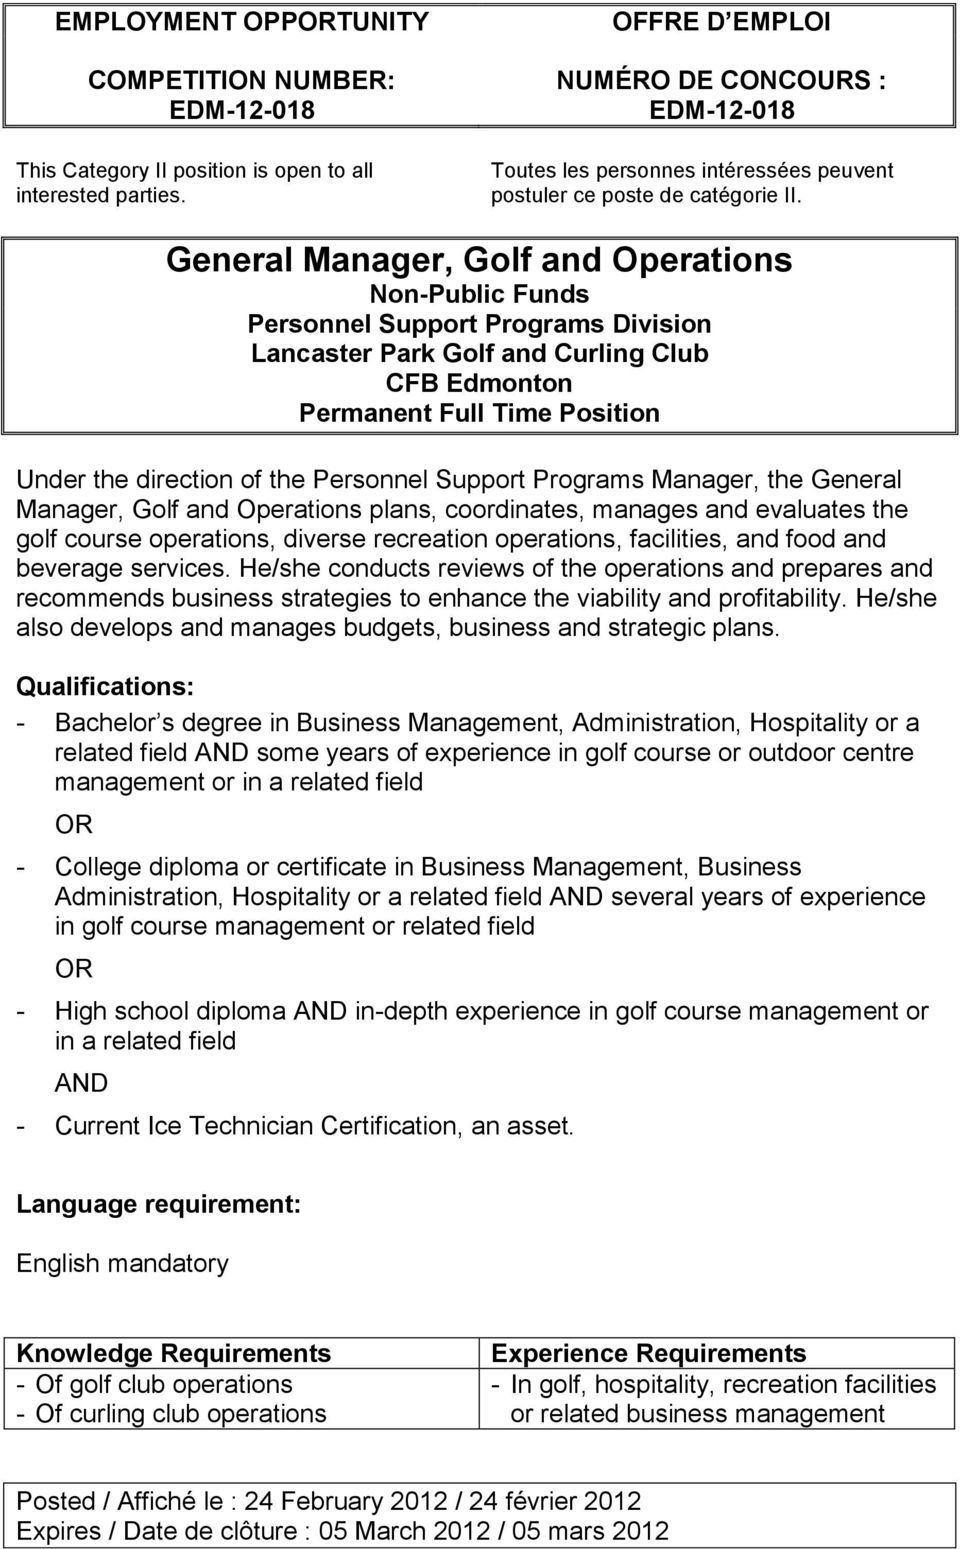 Personnel Support Programs Manager, the General Manager, Golf and Operations plans, coordinates, manages and evaluates the golf course operations, diverse recreation operations, facilities, and food